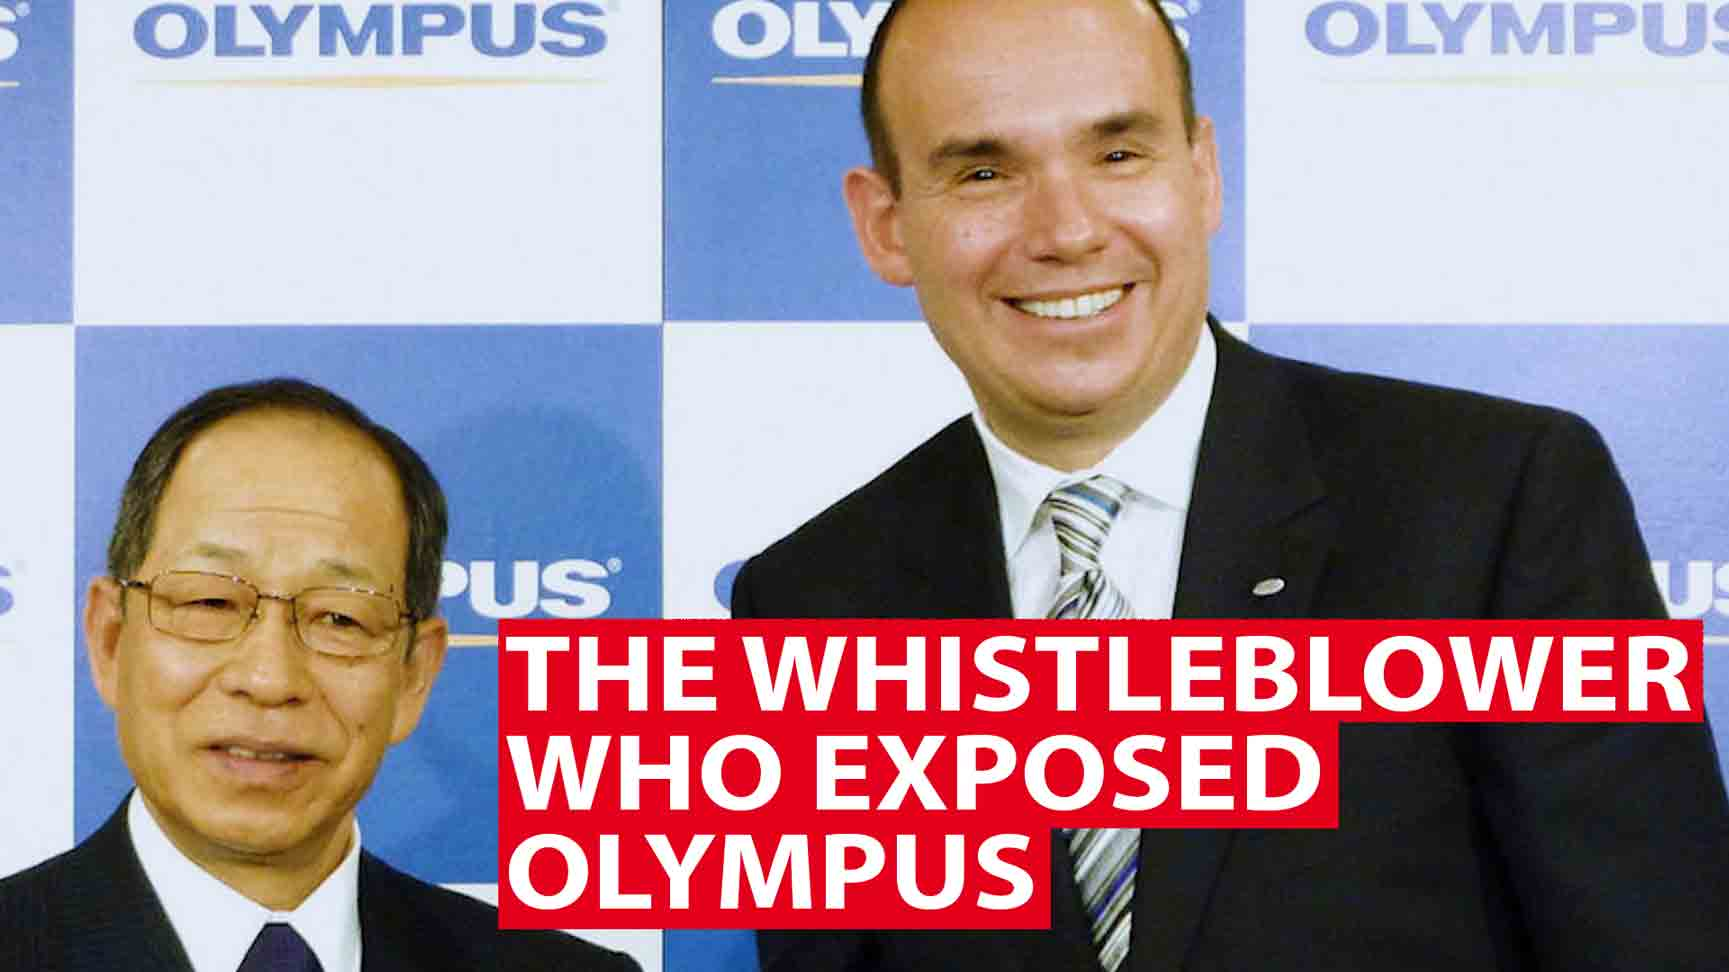 The whistleblower who exposed Olympus